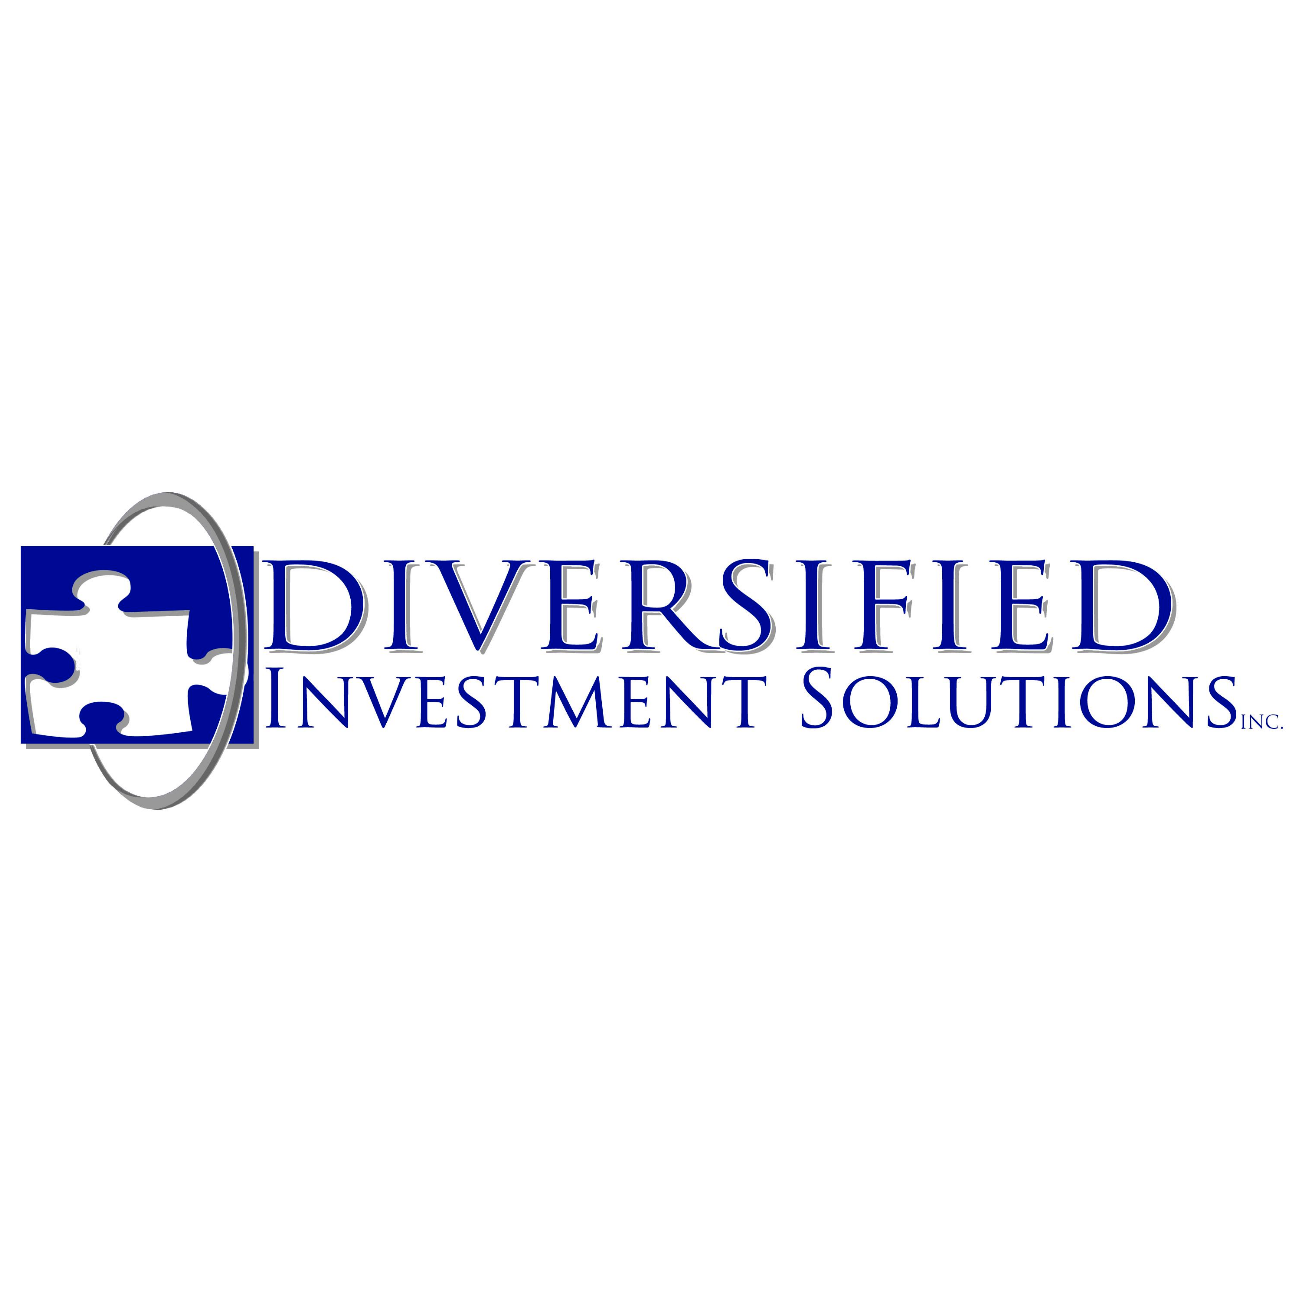 Diversified Investment Solutions LLC